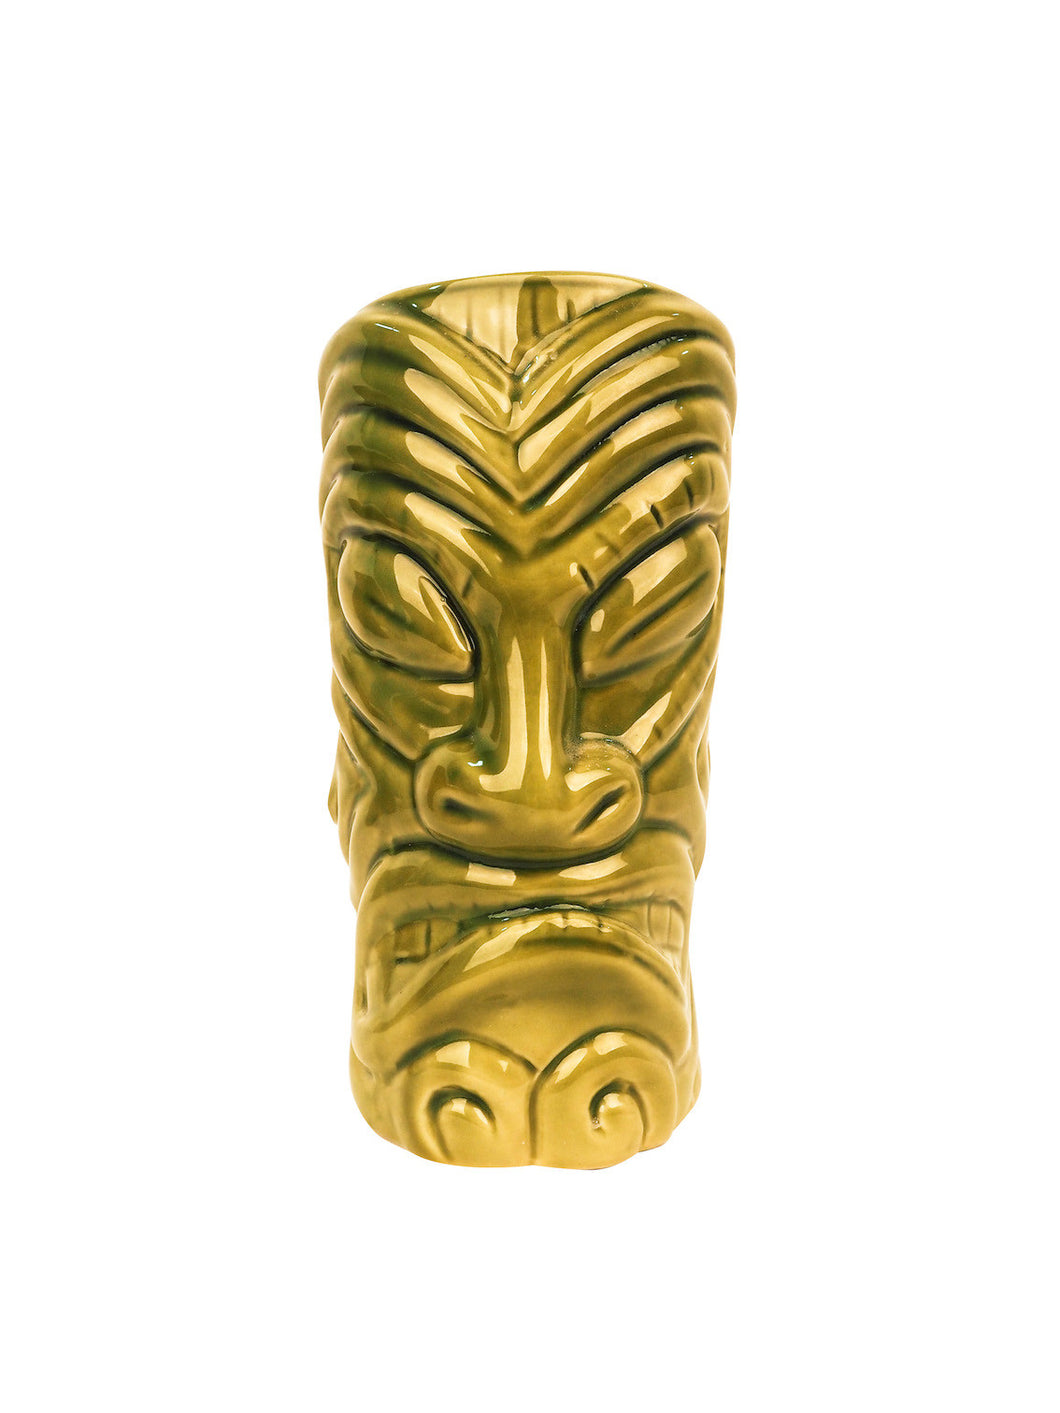 Tiki Mug - Chief 360ml | Glazed Ceramic